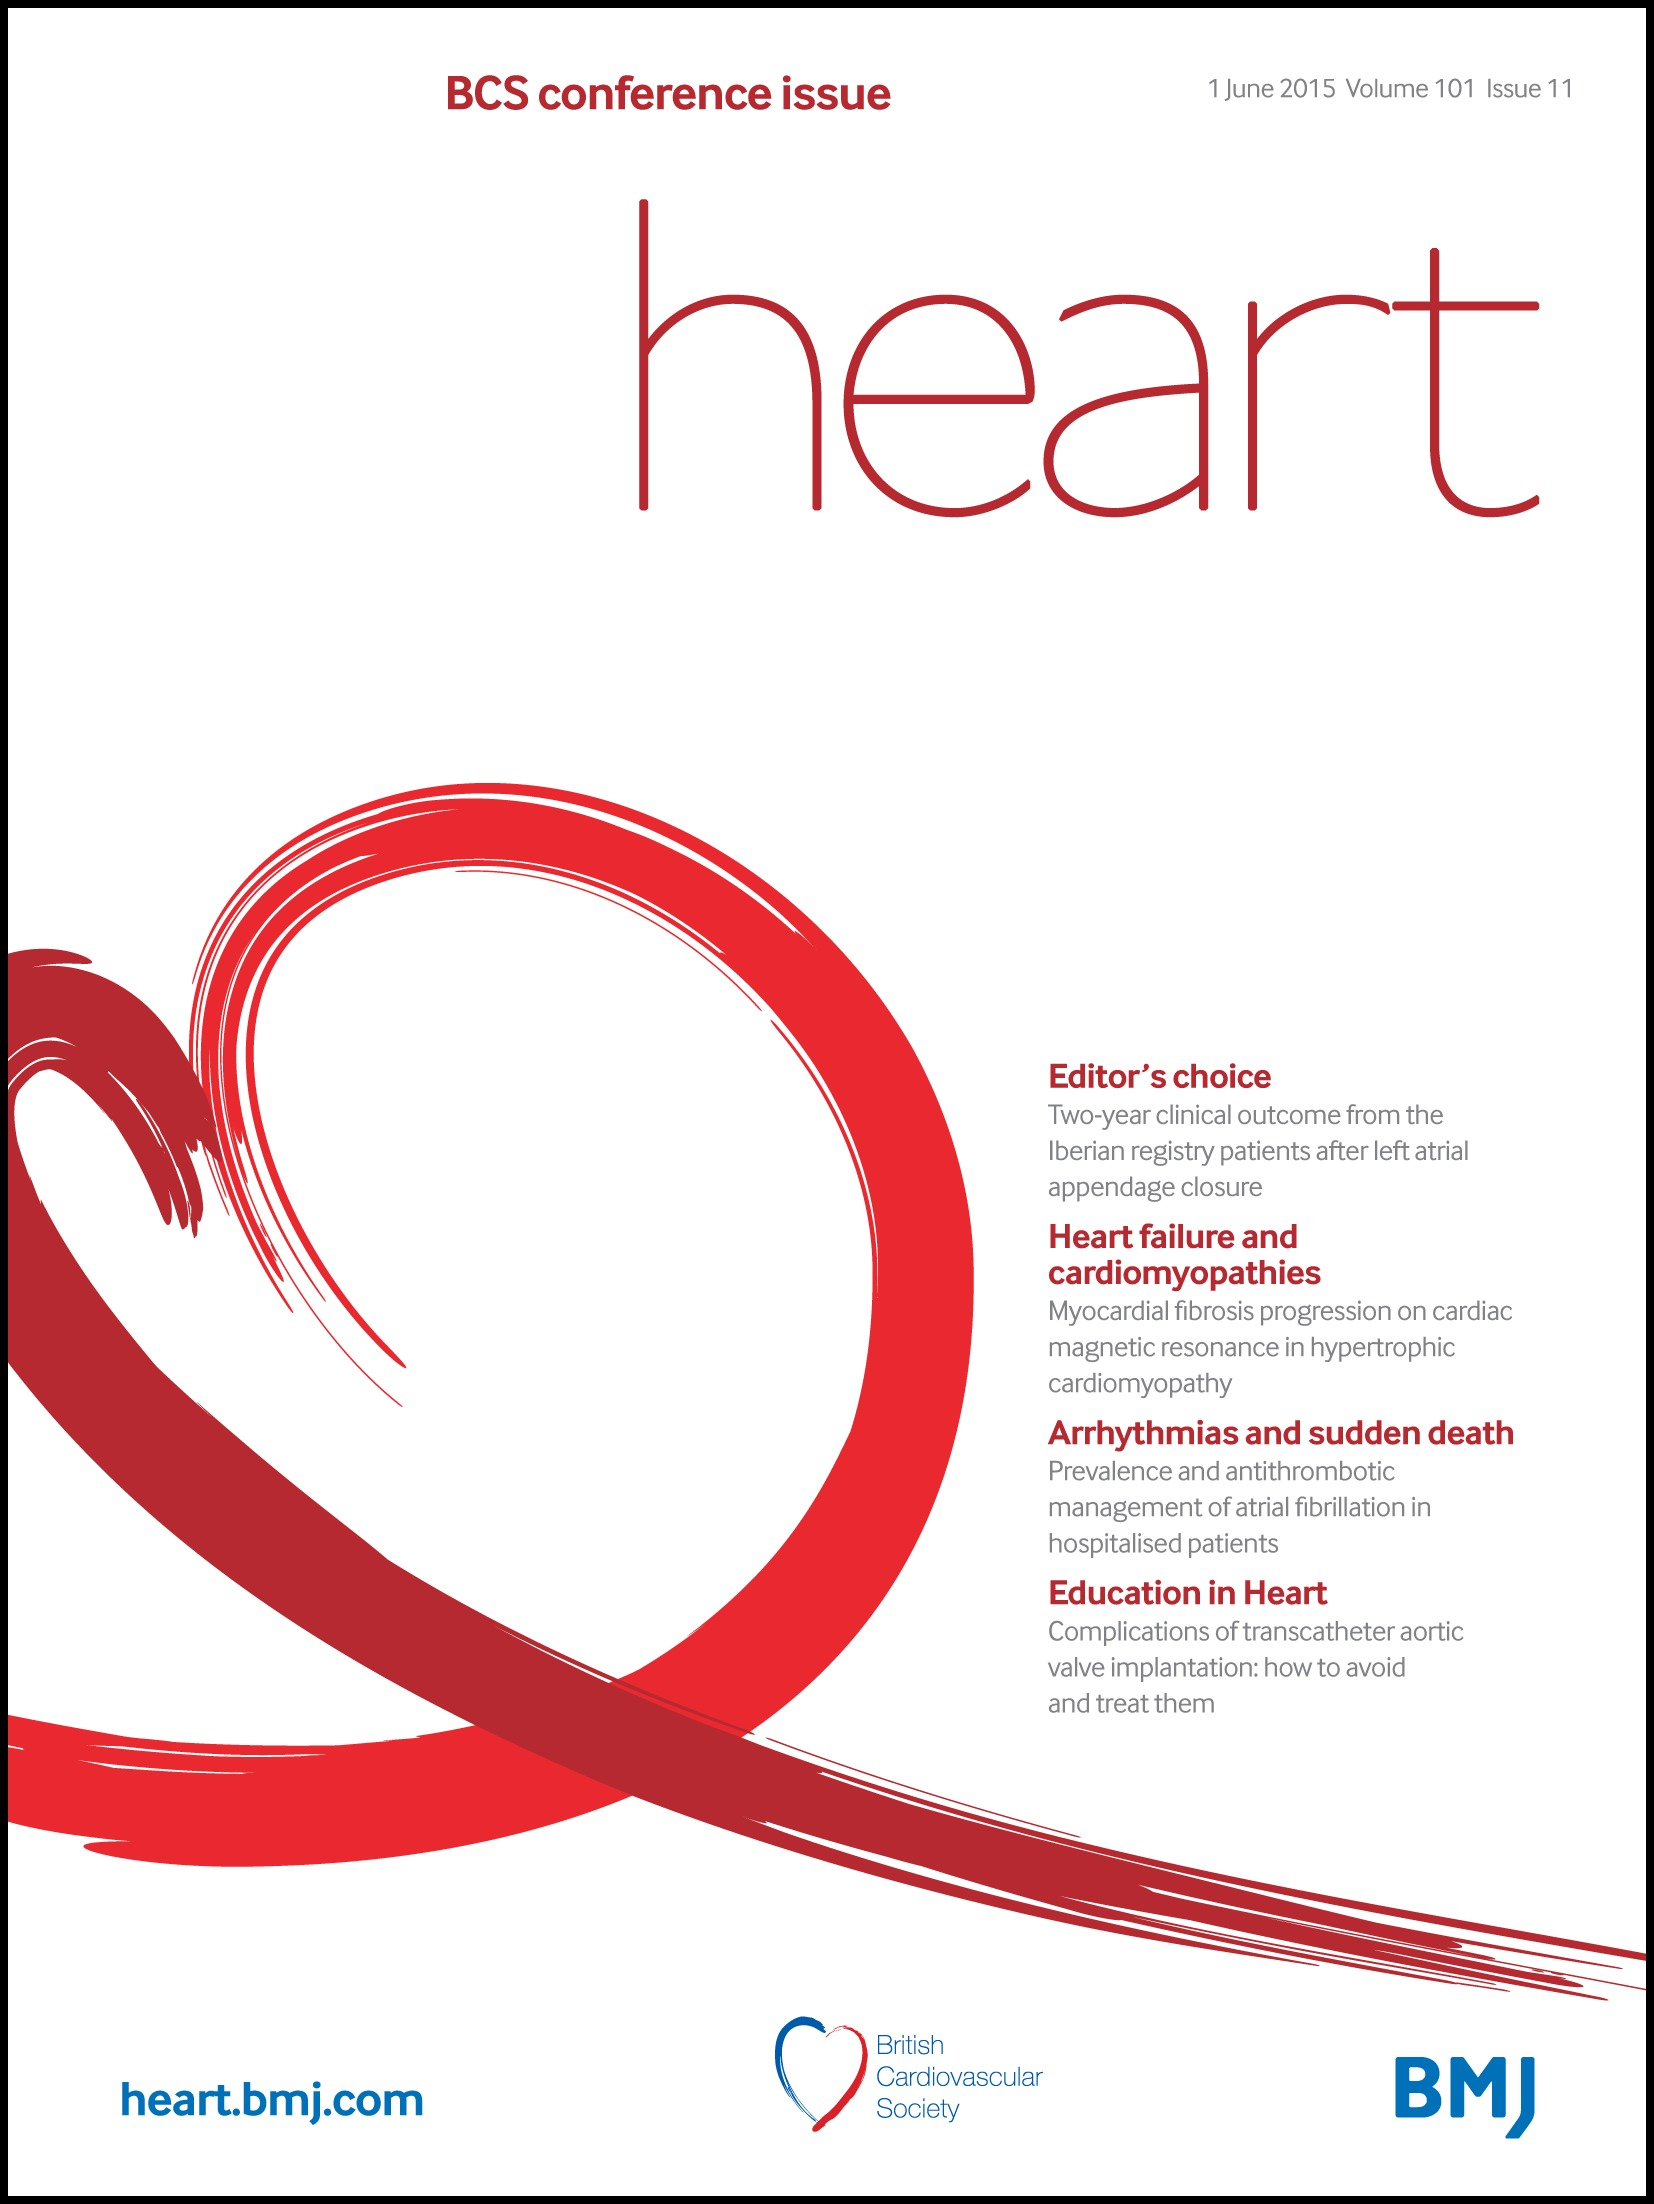 Heart rate is associated with progression of atrial